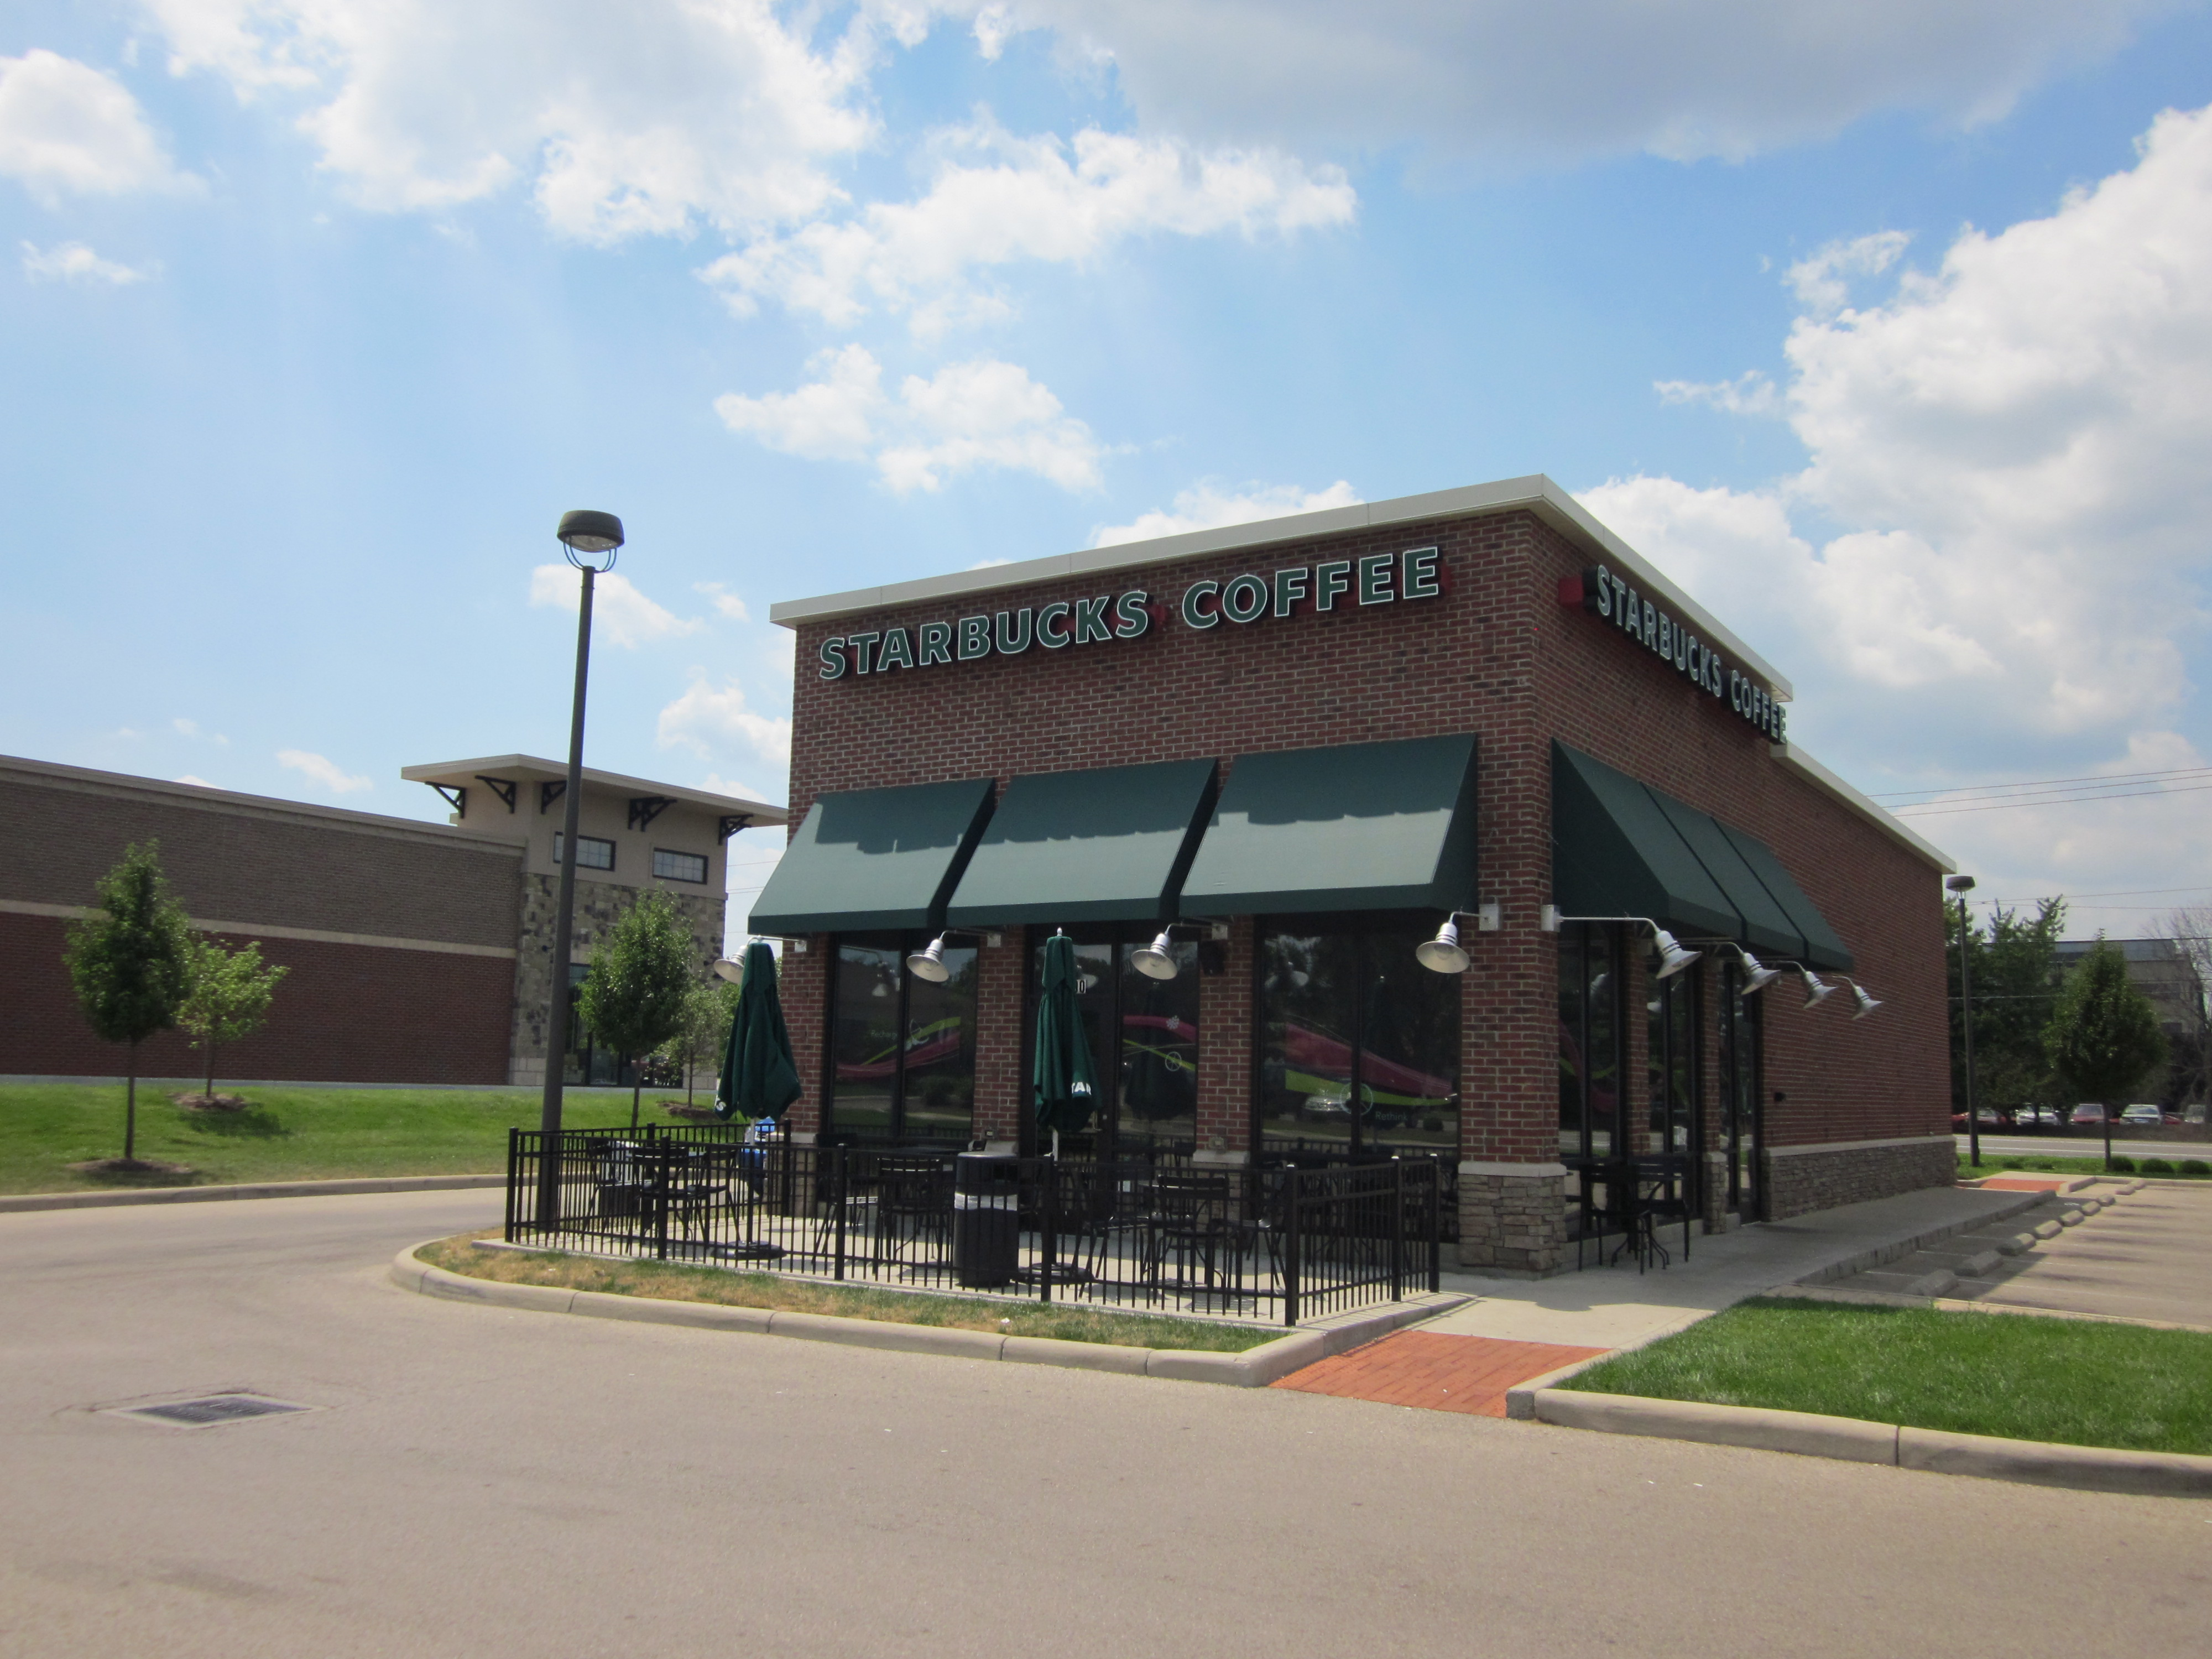 Superior Queen City Awning Commercial Project, Starbucks Classic Awnings